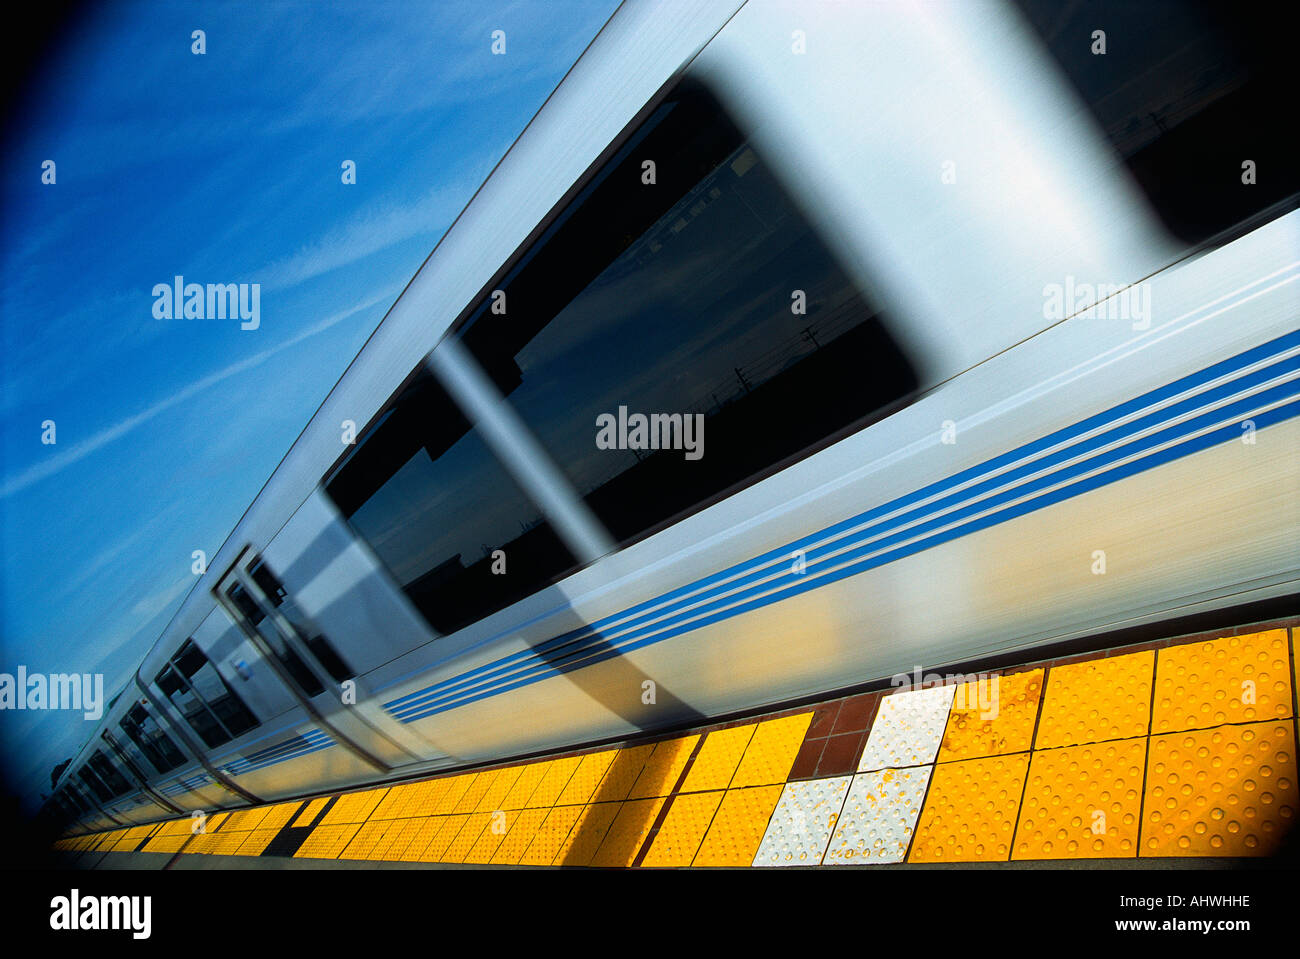 This is the Bart Metro Rail It is the Bay area rapid transit system It is a form of transportation The train is shown at an - Stock Image